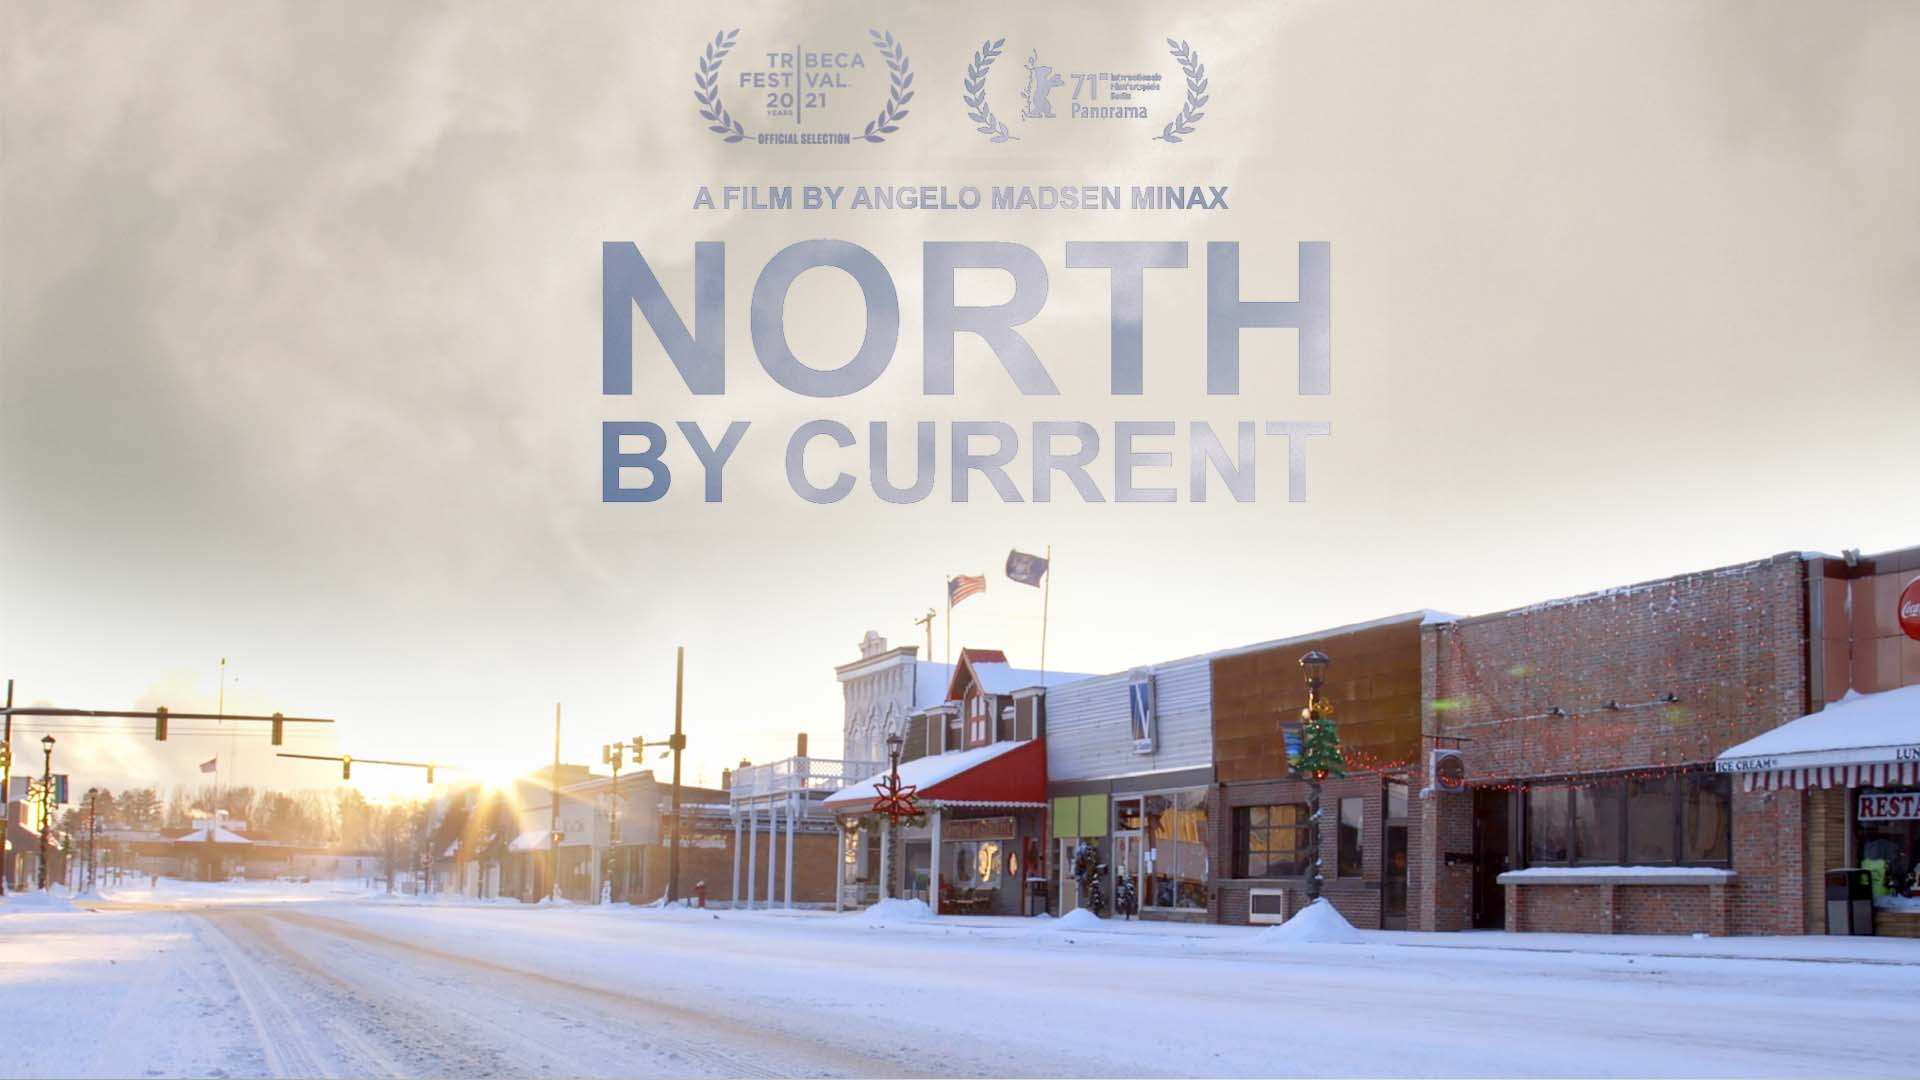 North by Current